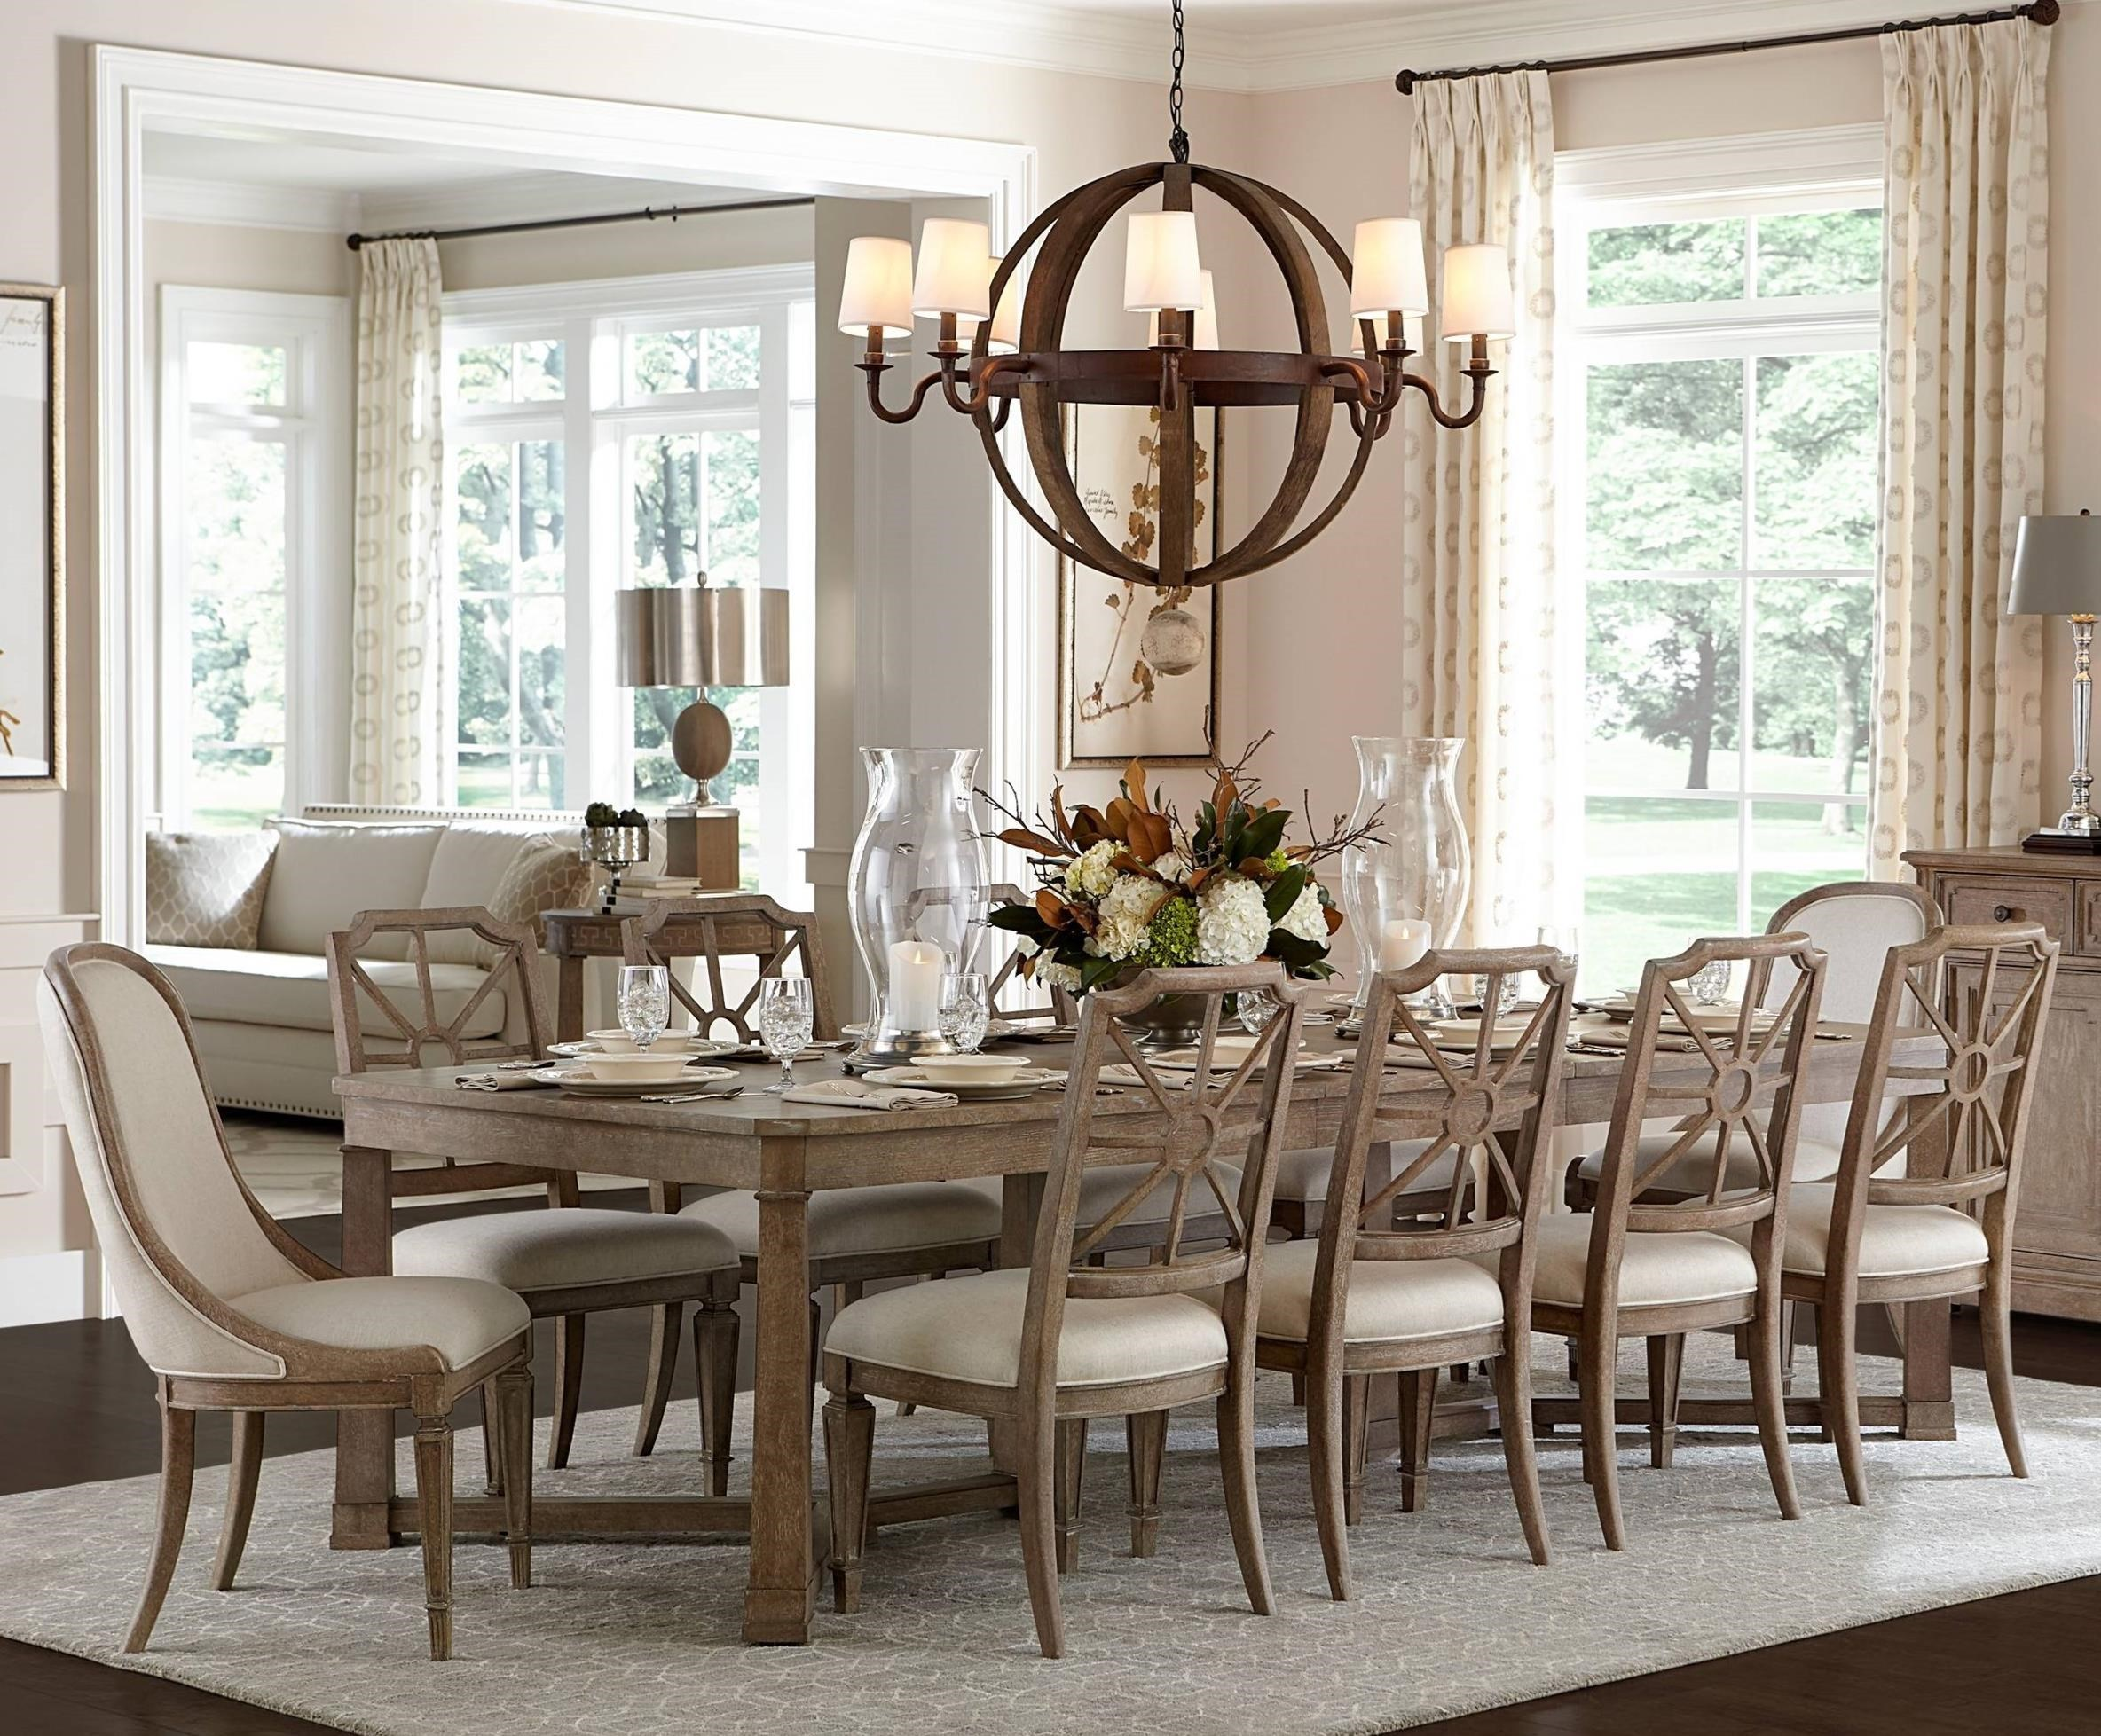 Stanley Furniture Wethersfield Estate 11 Piece Rectangular Dining Table Set  | Miskelly Furniture | Dining 7 (or More) Piece Sets